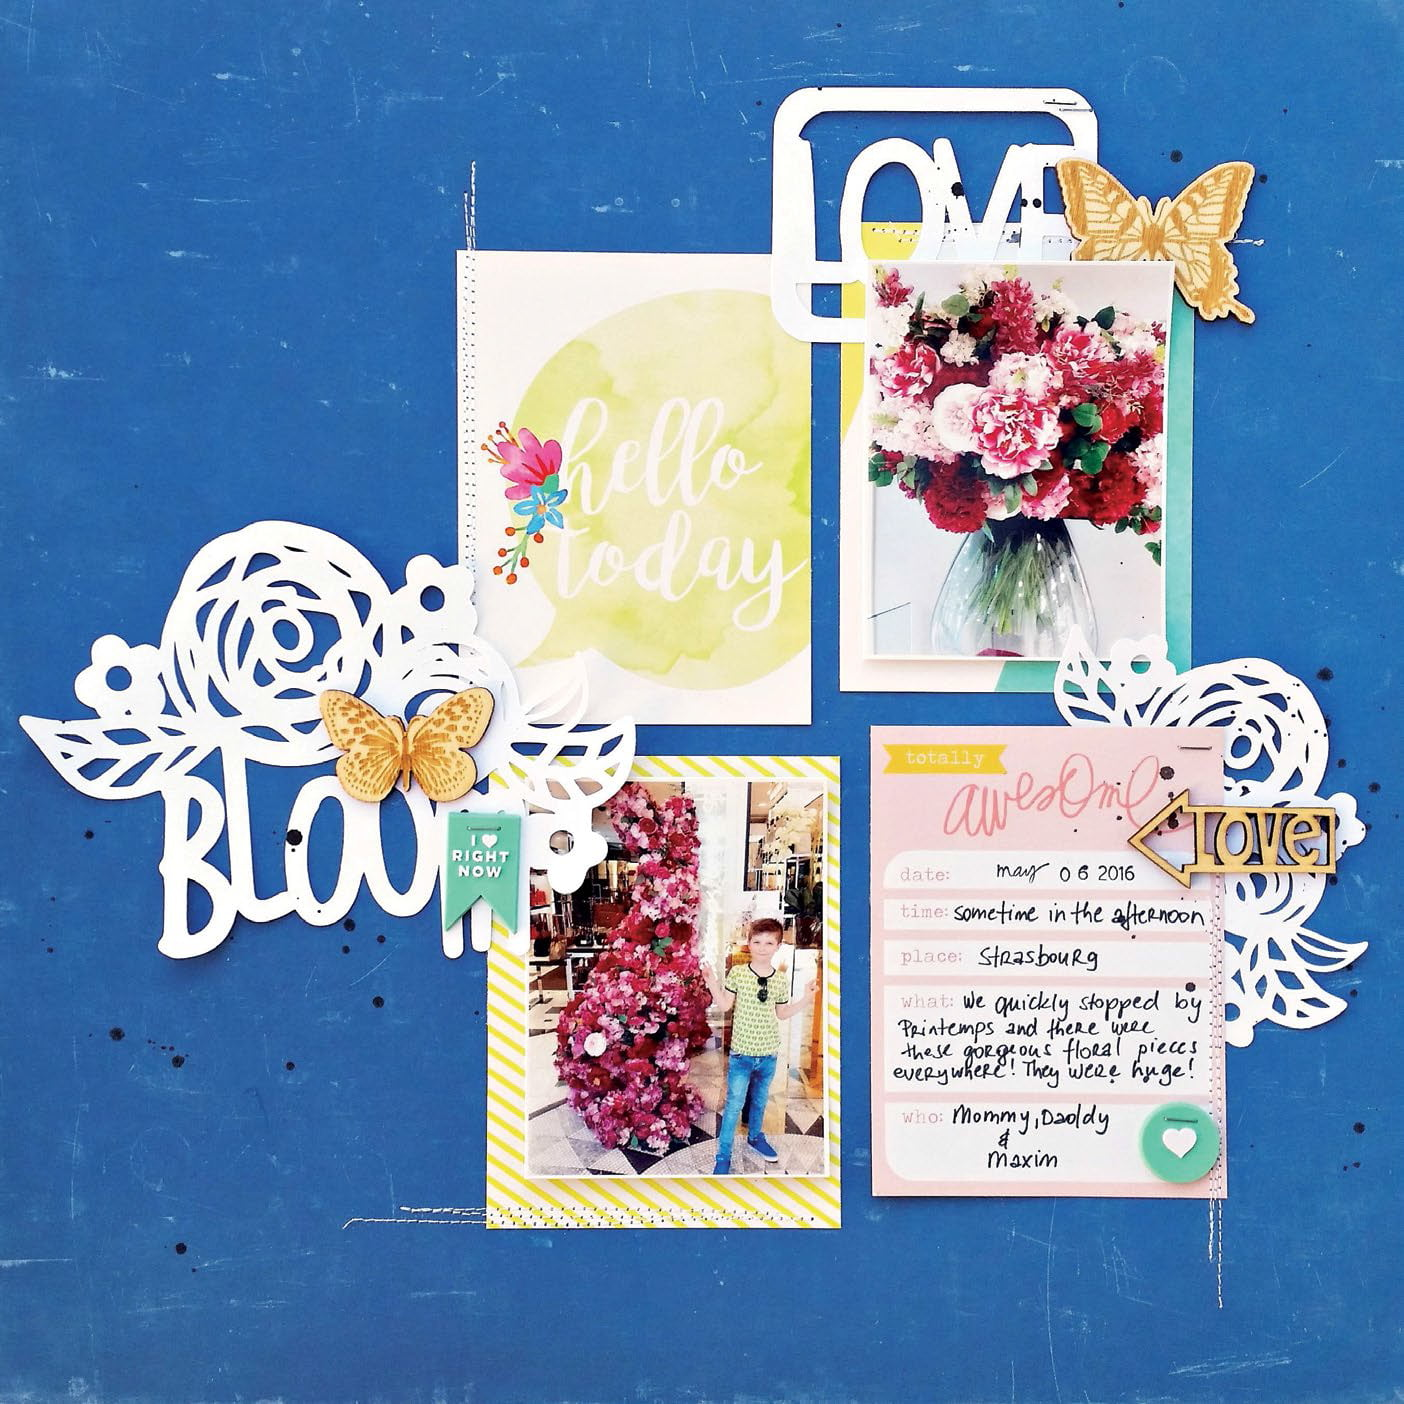 Bloom by Zsoka Marko for Scrapbook & Cards Today